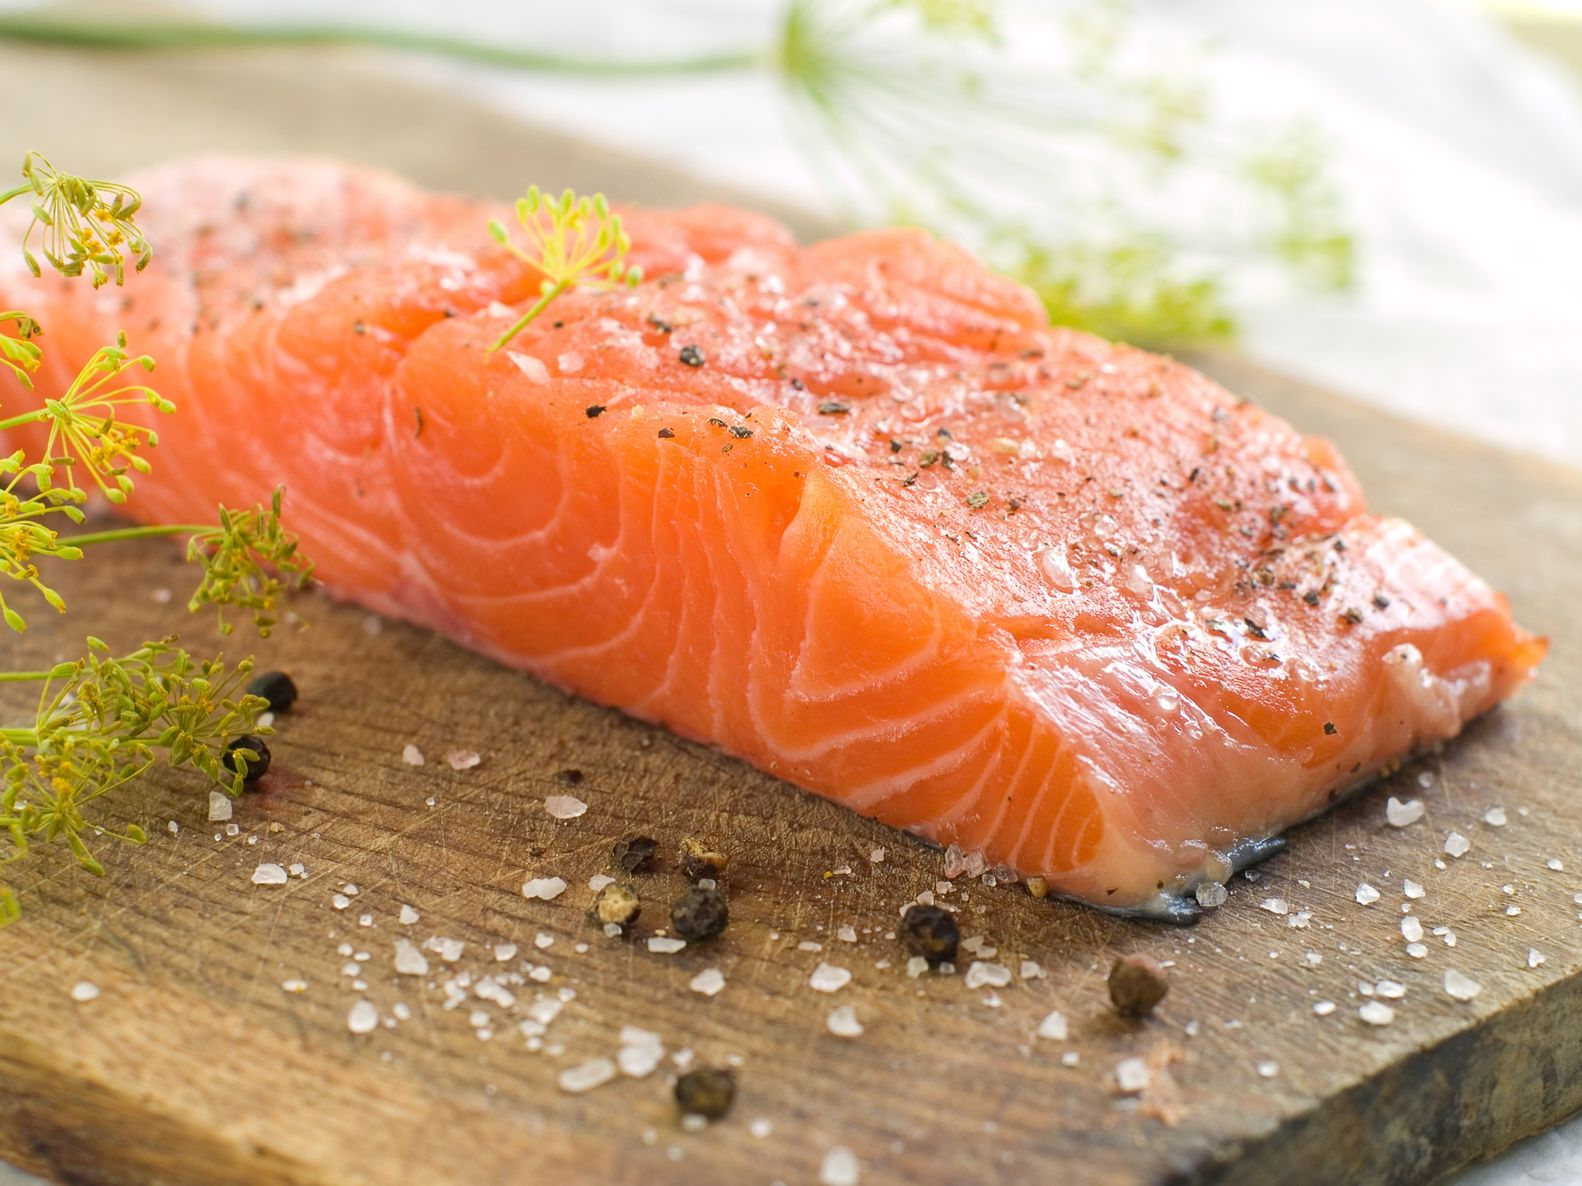 14748185 - fresh salmon fillet on wooden board, selective focus